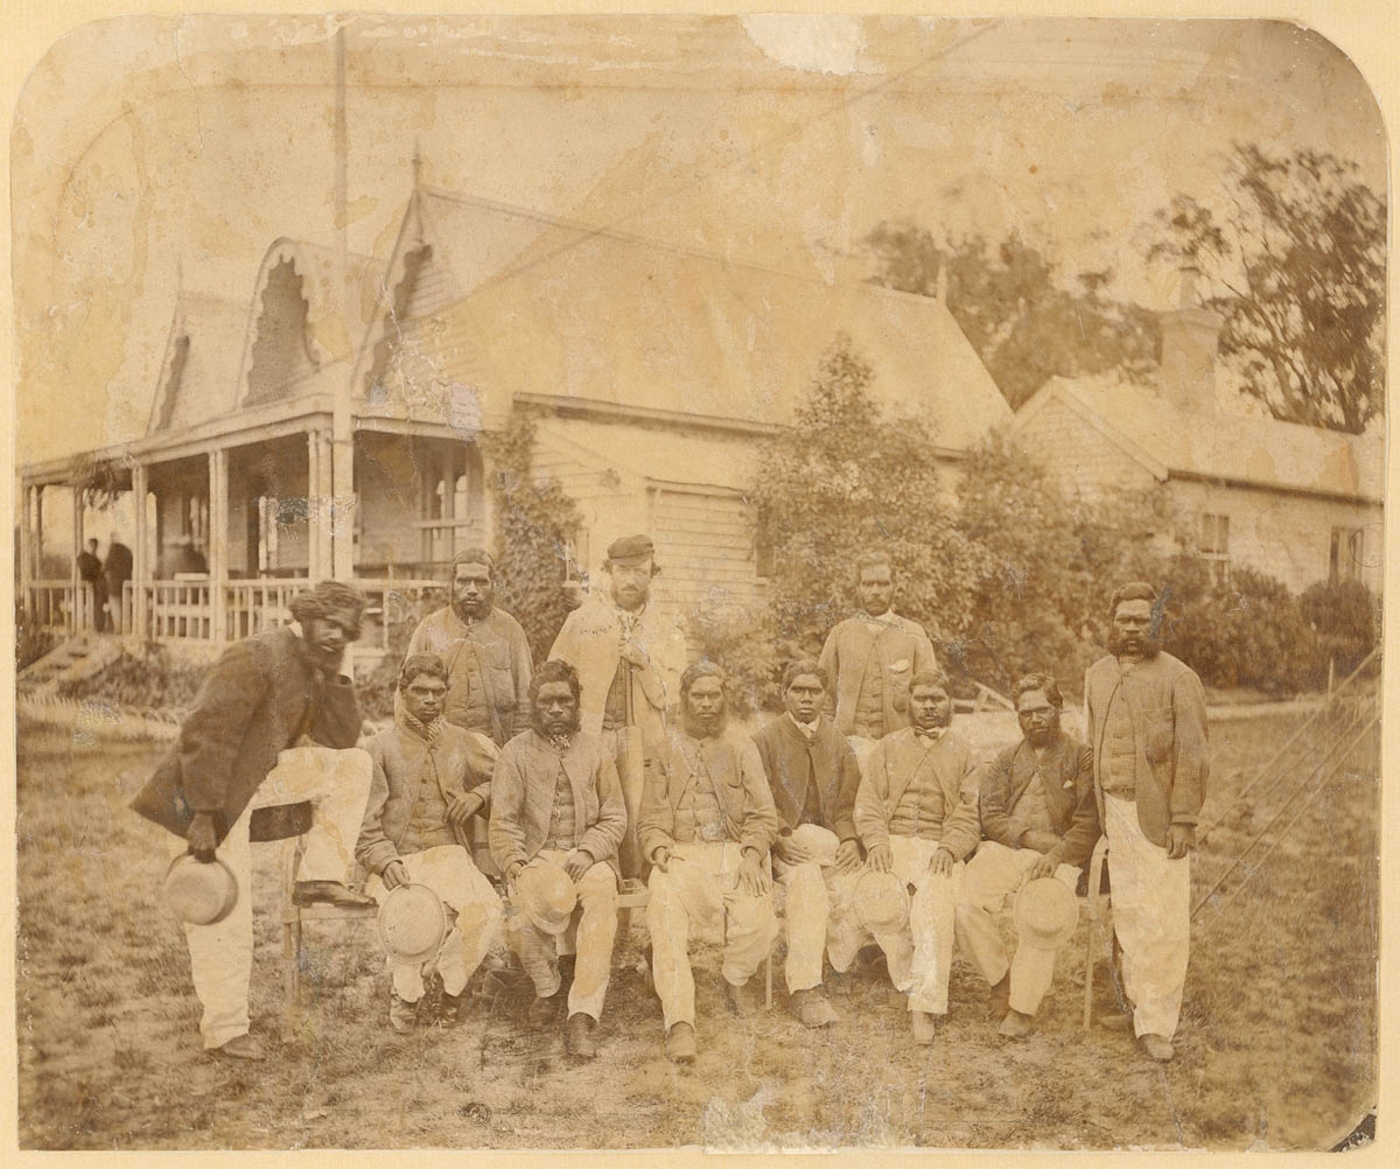 Indigenous Australian cricket team seated outside an old building with their hats